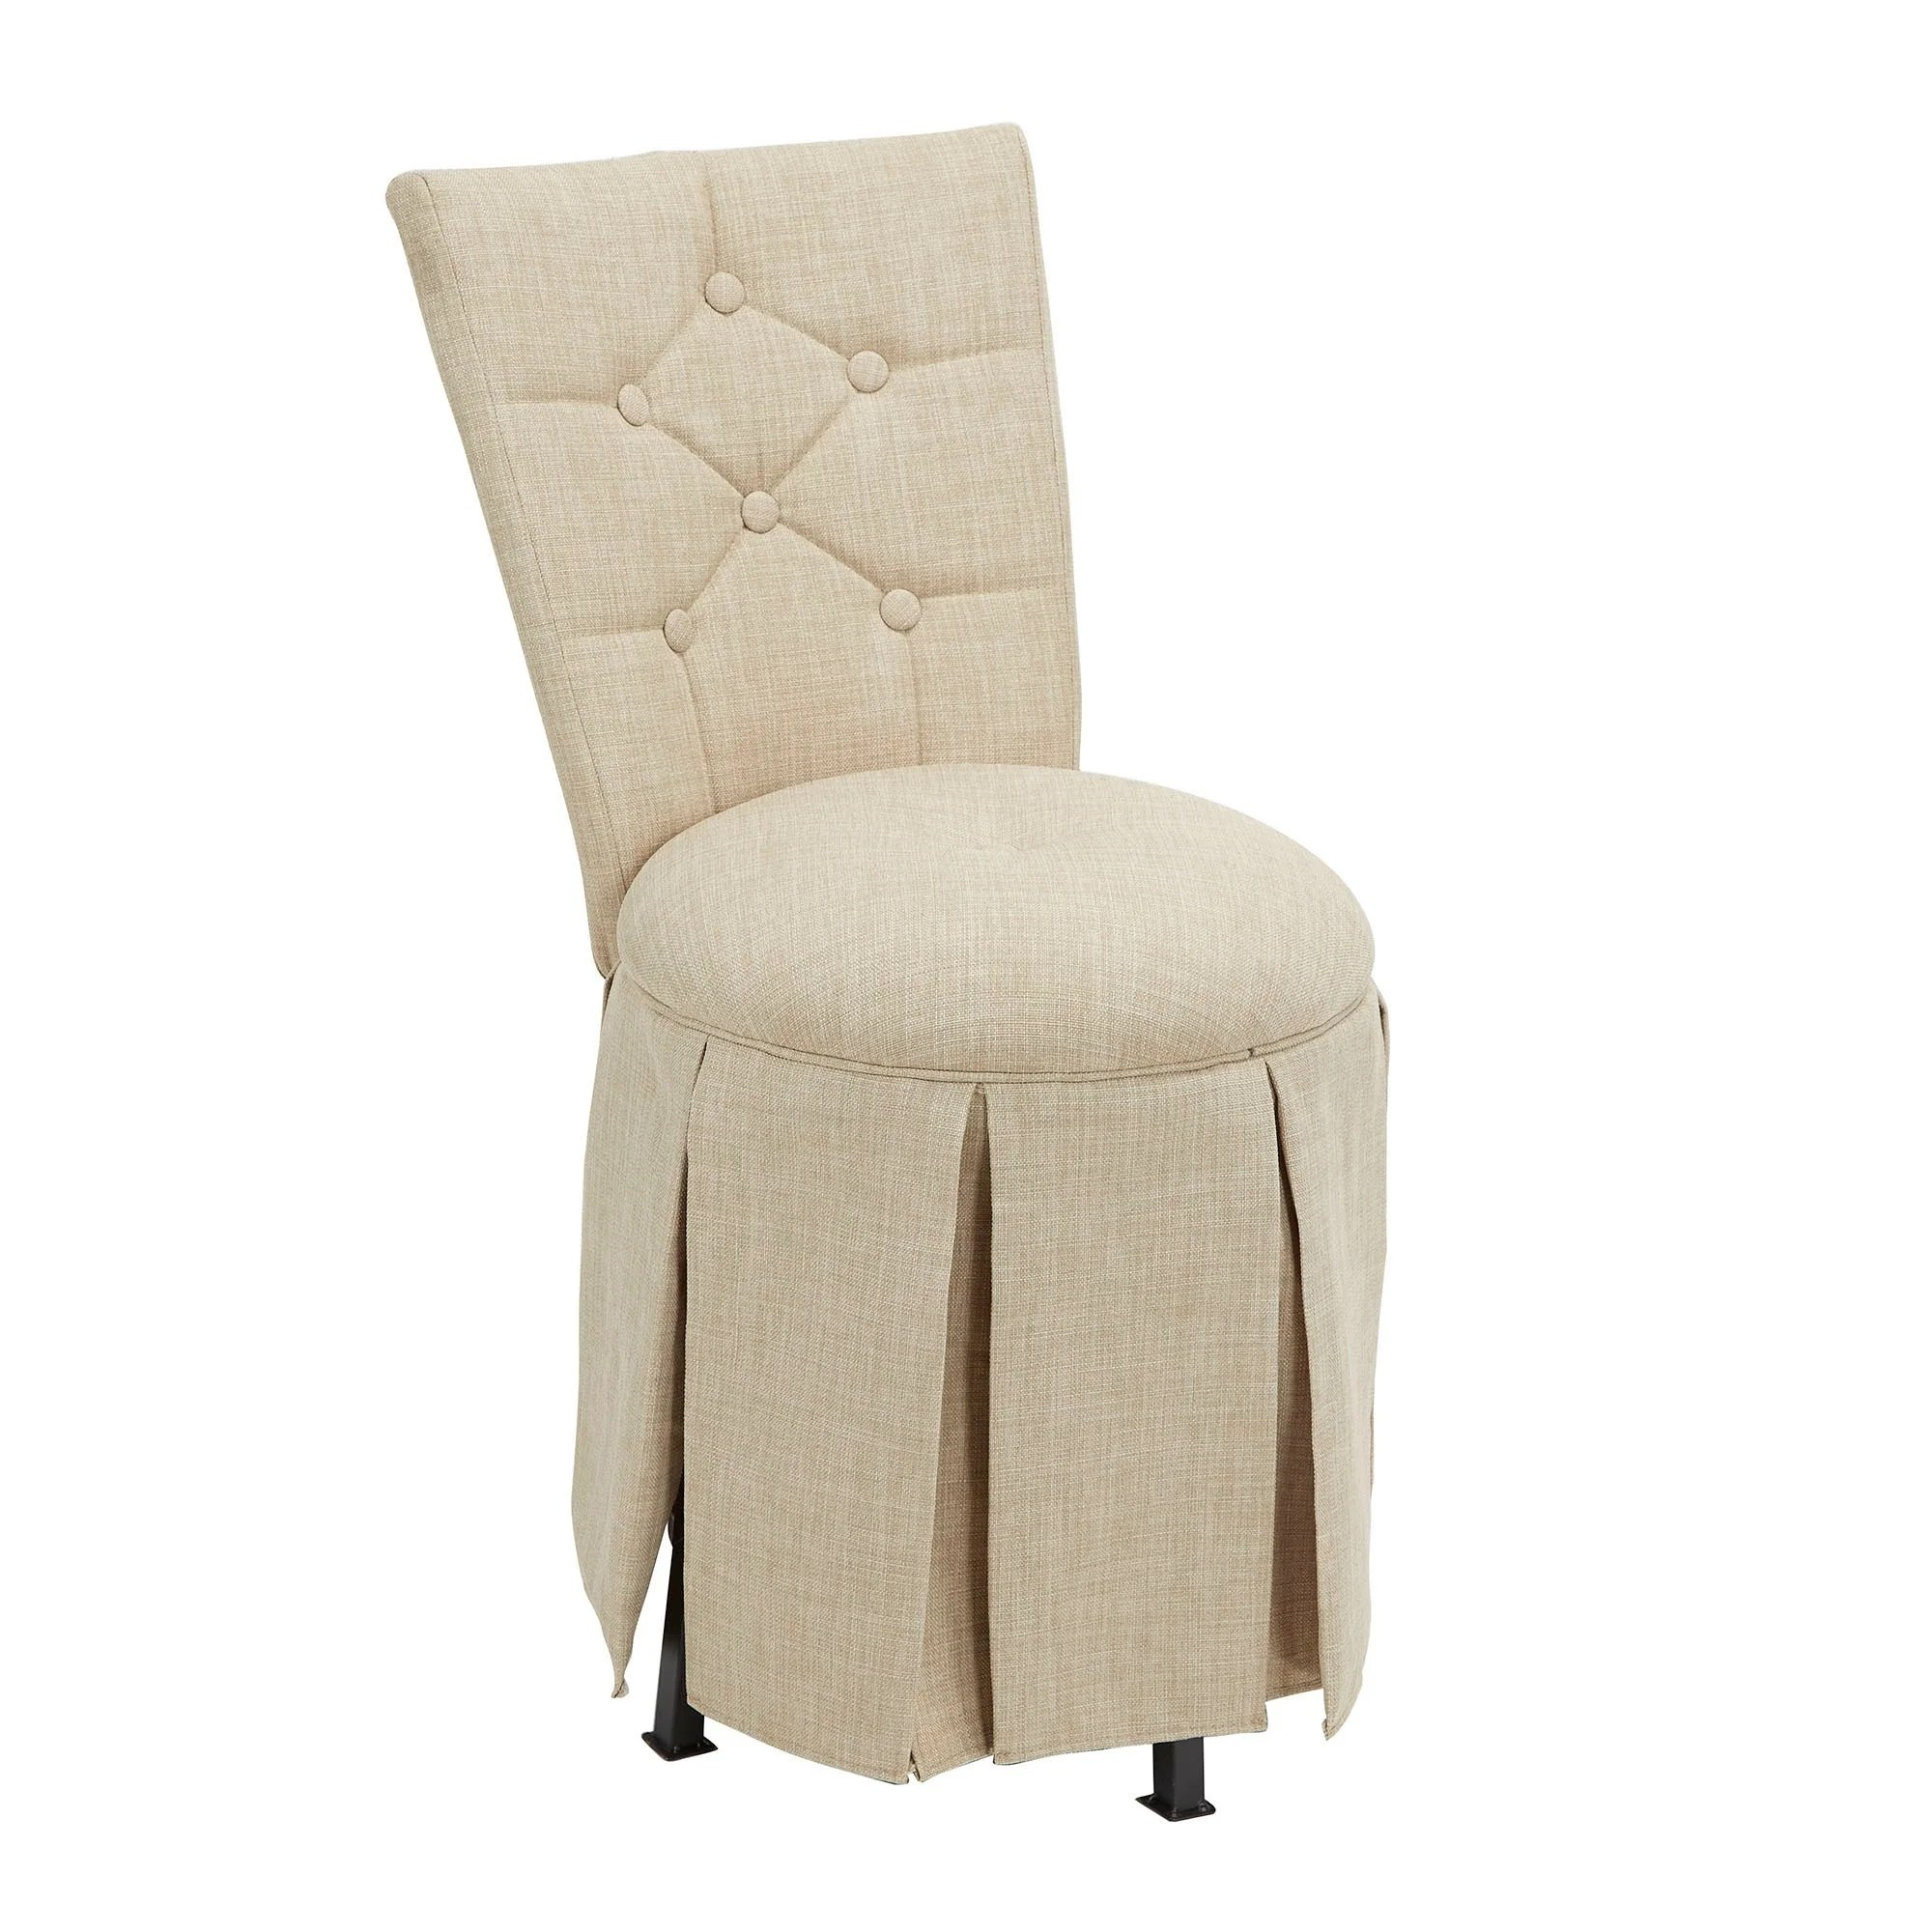 Swivel Vanity Chair Smith Skirted Swivel Vanity Chair With Diamond Tufted Back